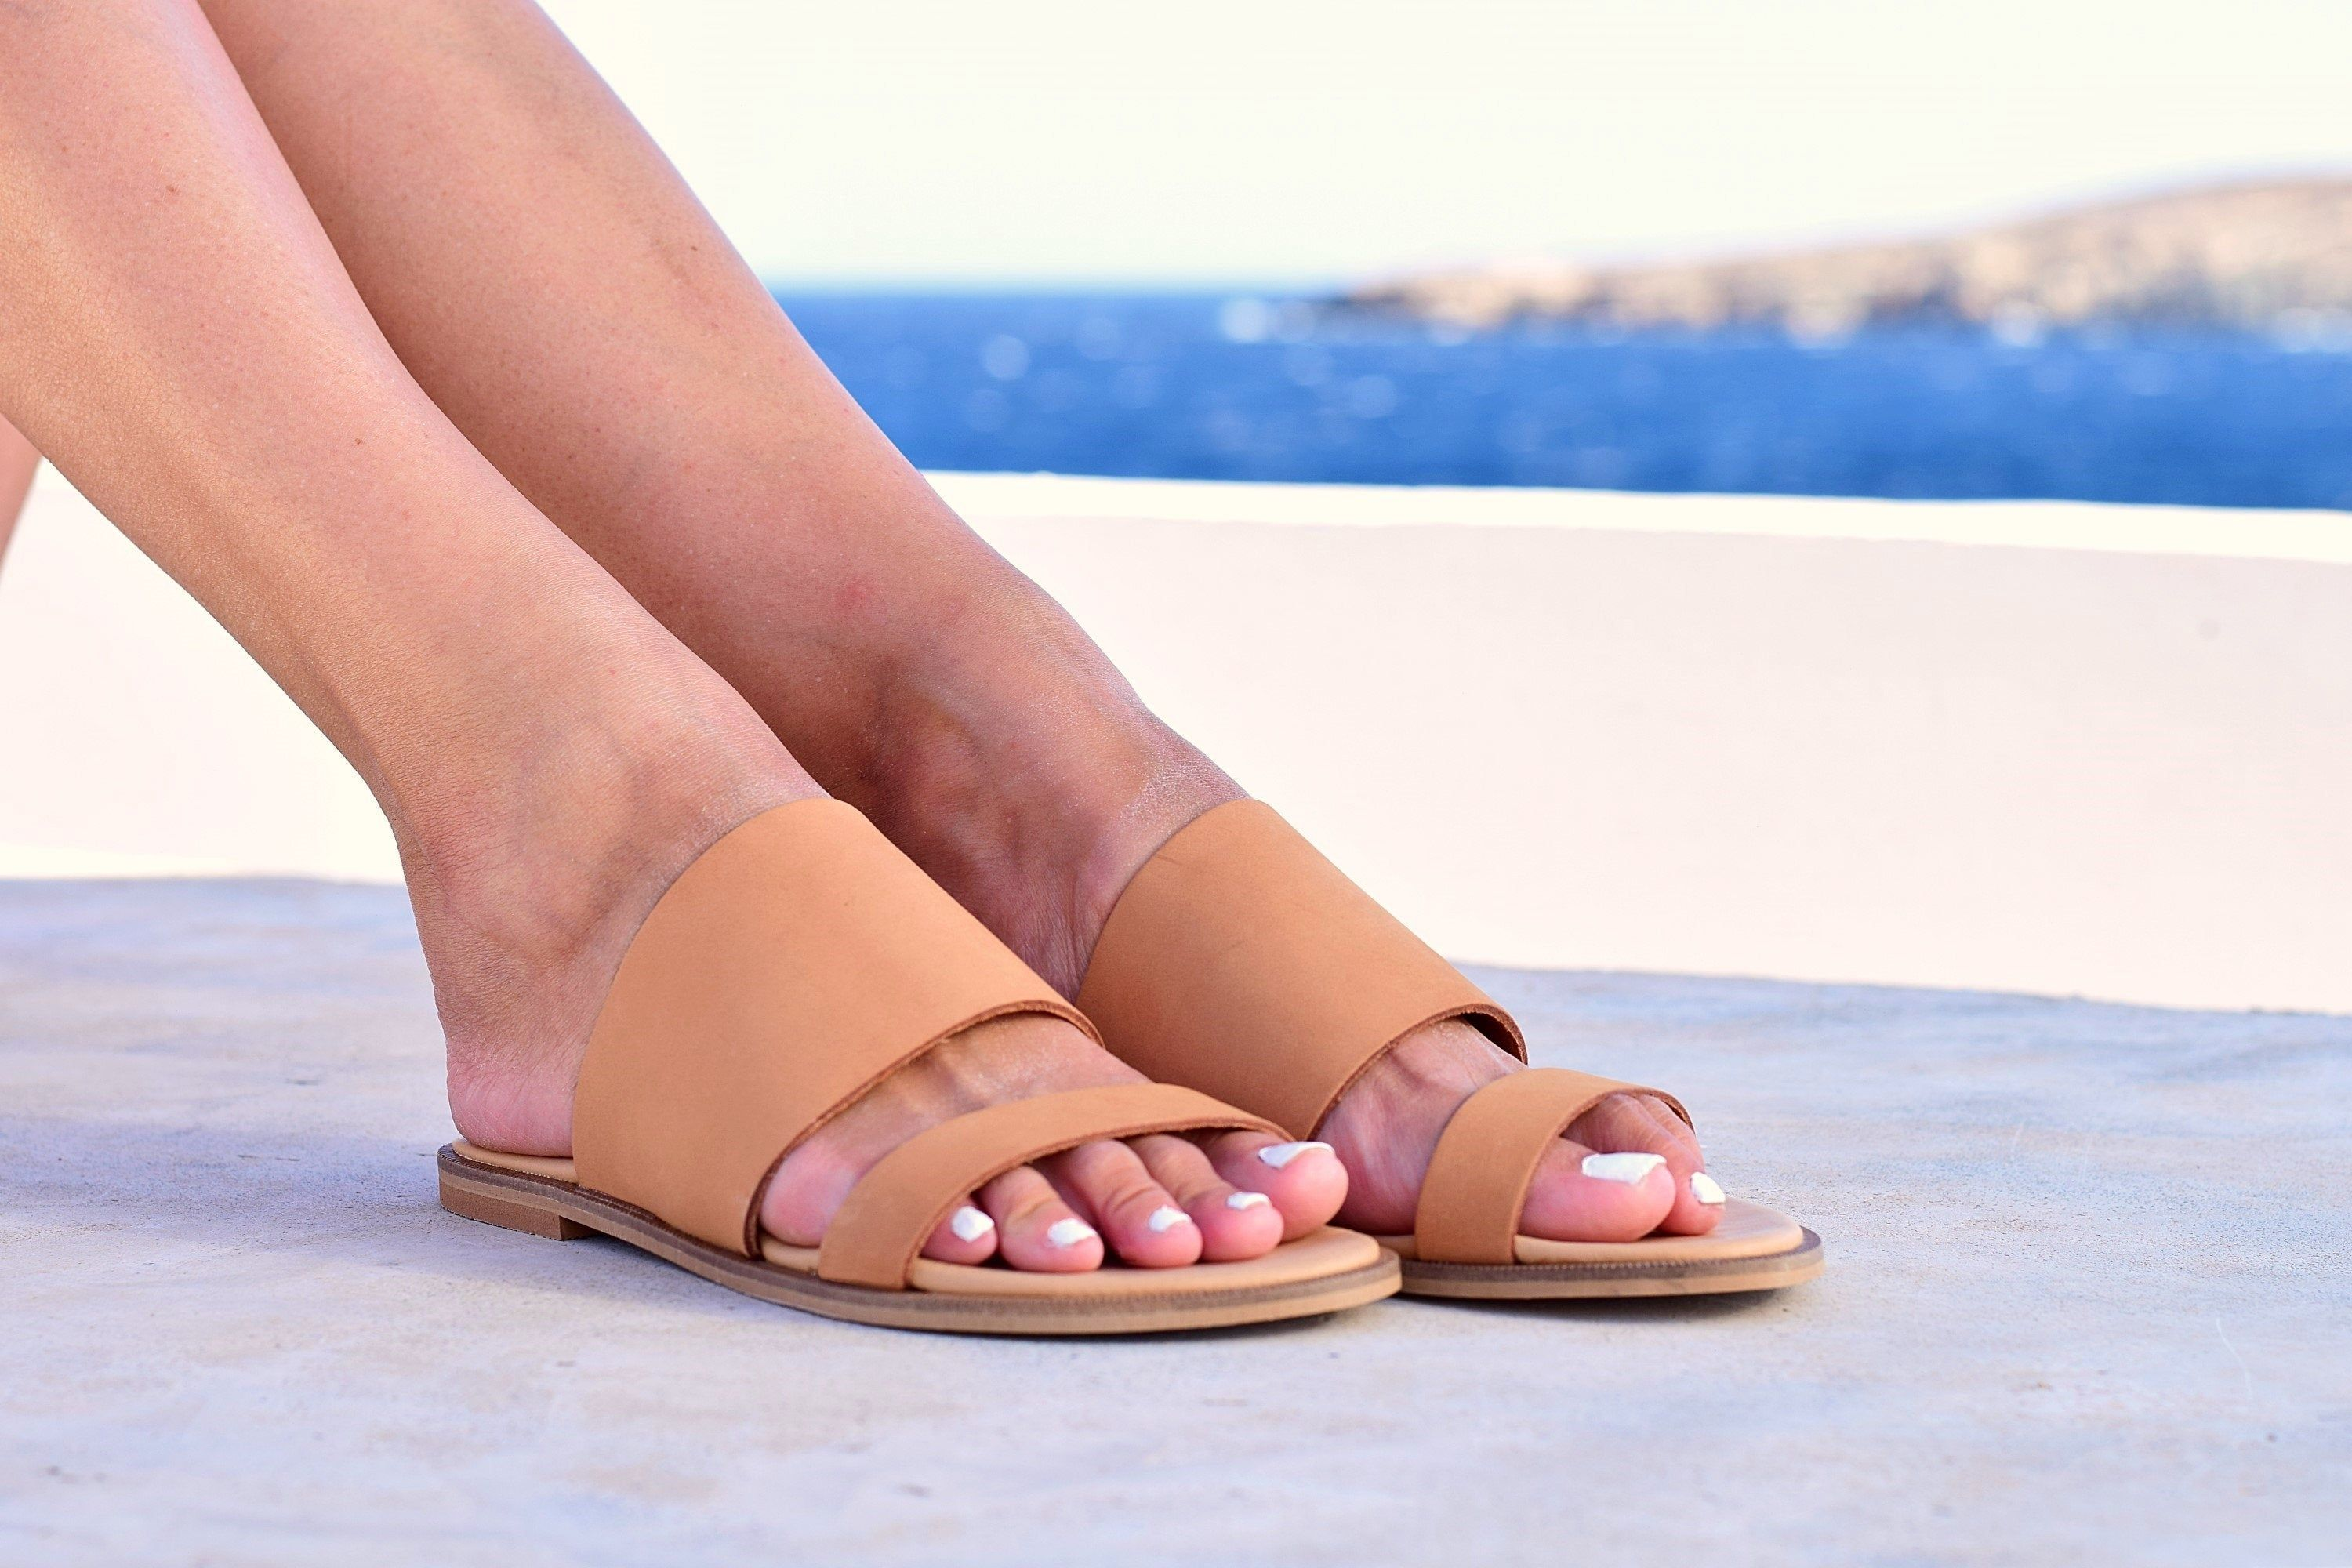 Nude Sandals for Women Nubuck Leather Sandals with Soft Anatomic Insole Greek Sandals Handmade of Nubuck Genuine Calfskin Leather.